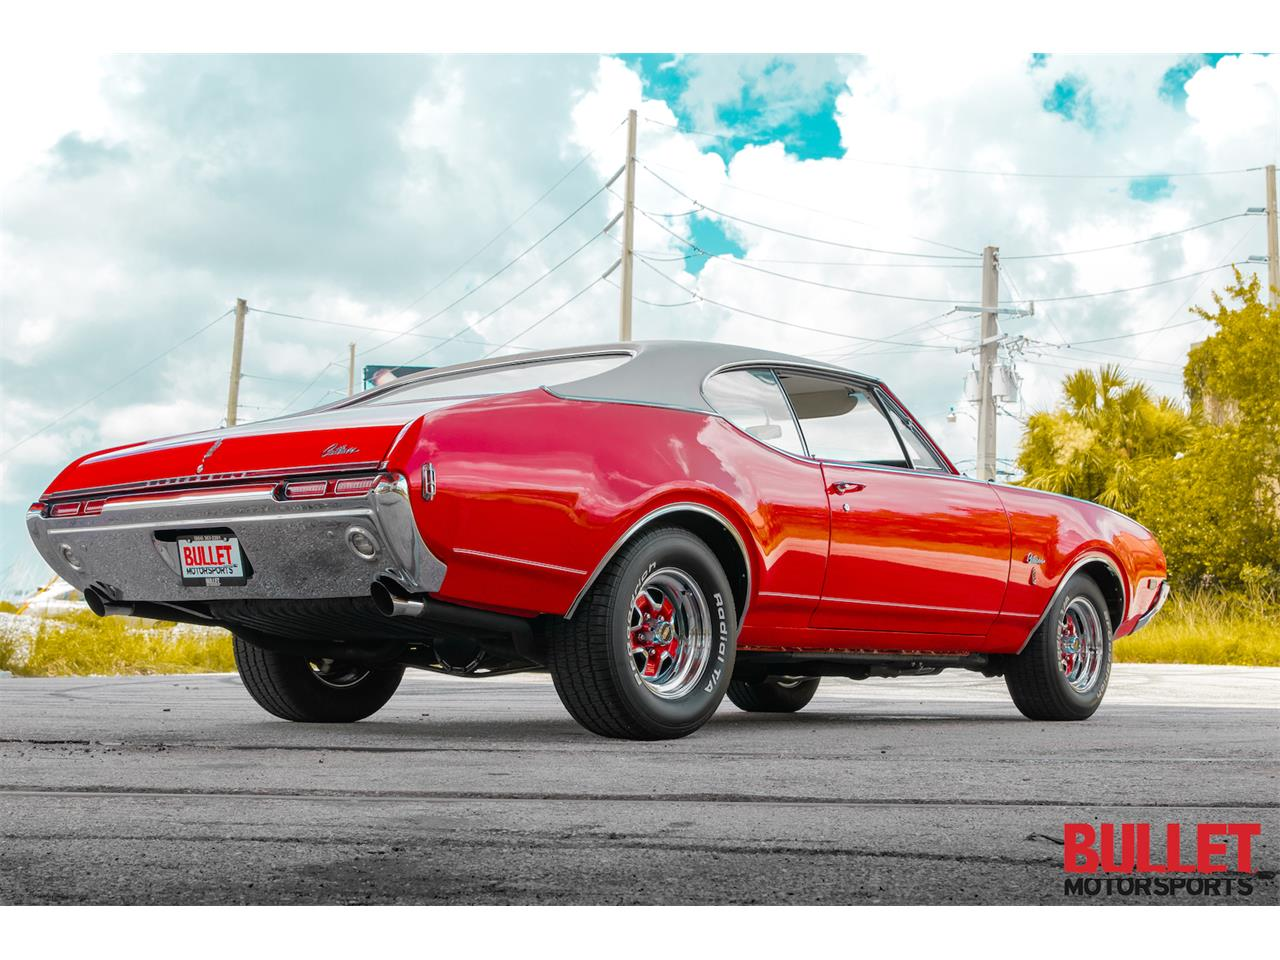 Large Picture of 1968 Oldsmobile Cutlass Supreme located in Fort Lauderdale Florida - $30,000.00 - PZS9